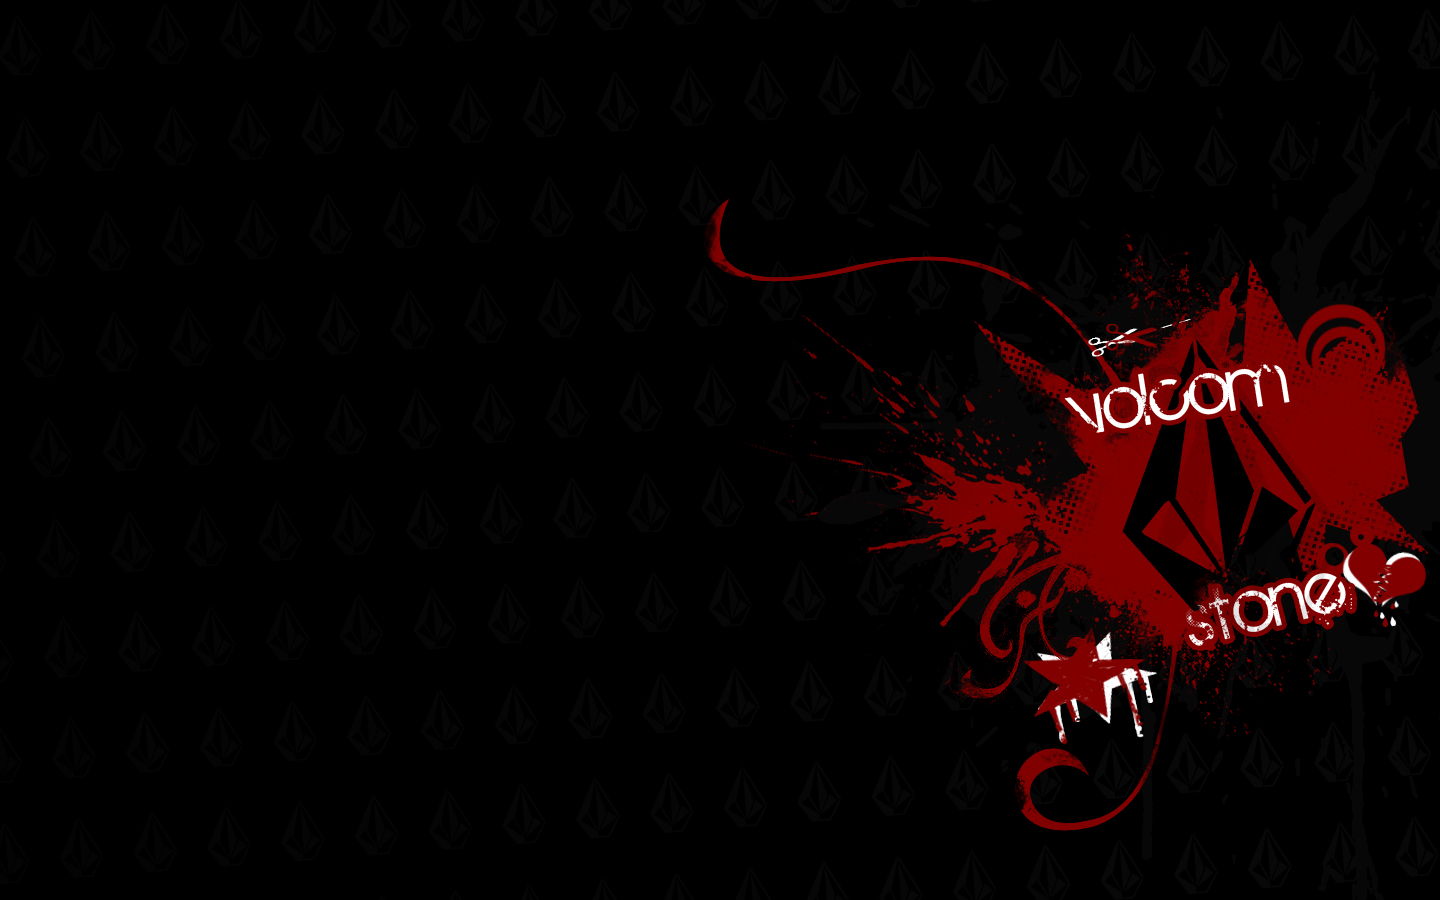 1440x900 - Volcom Backgrounds 20